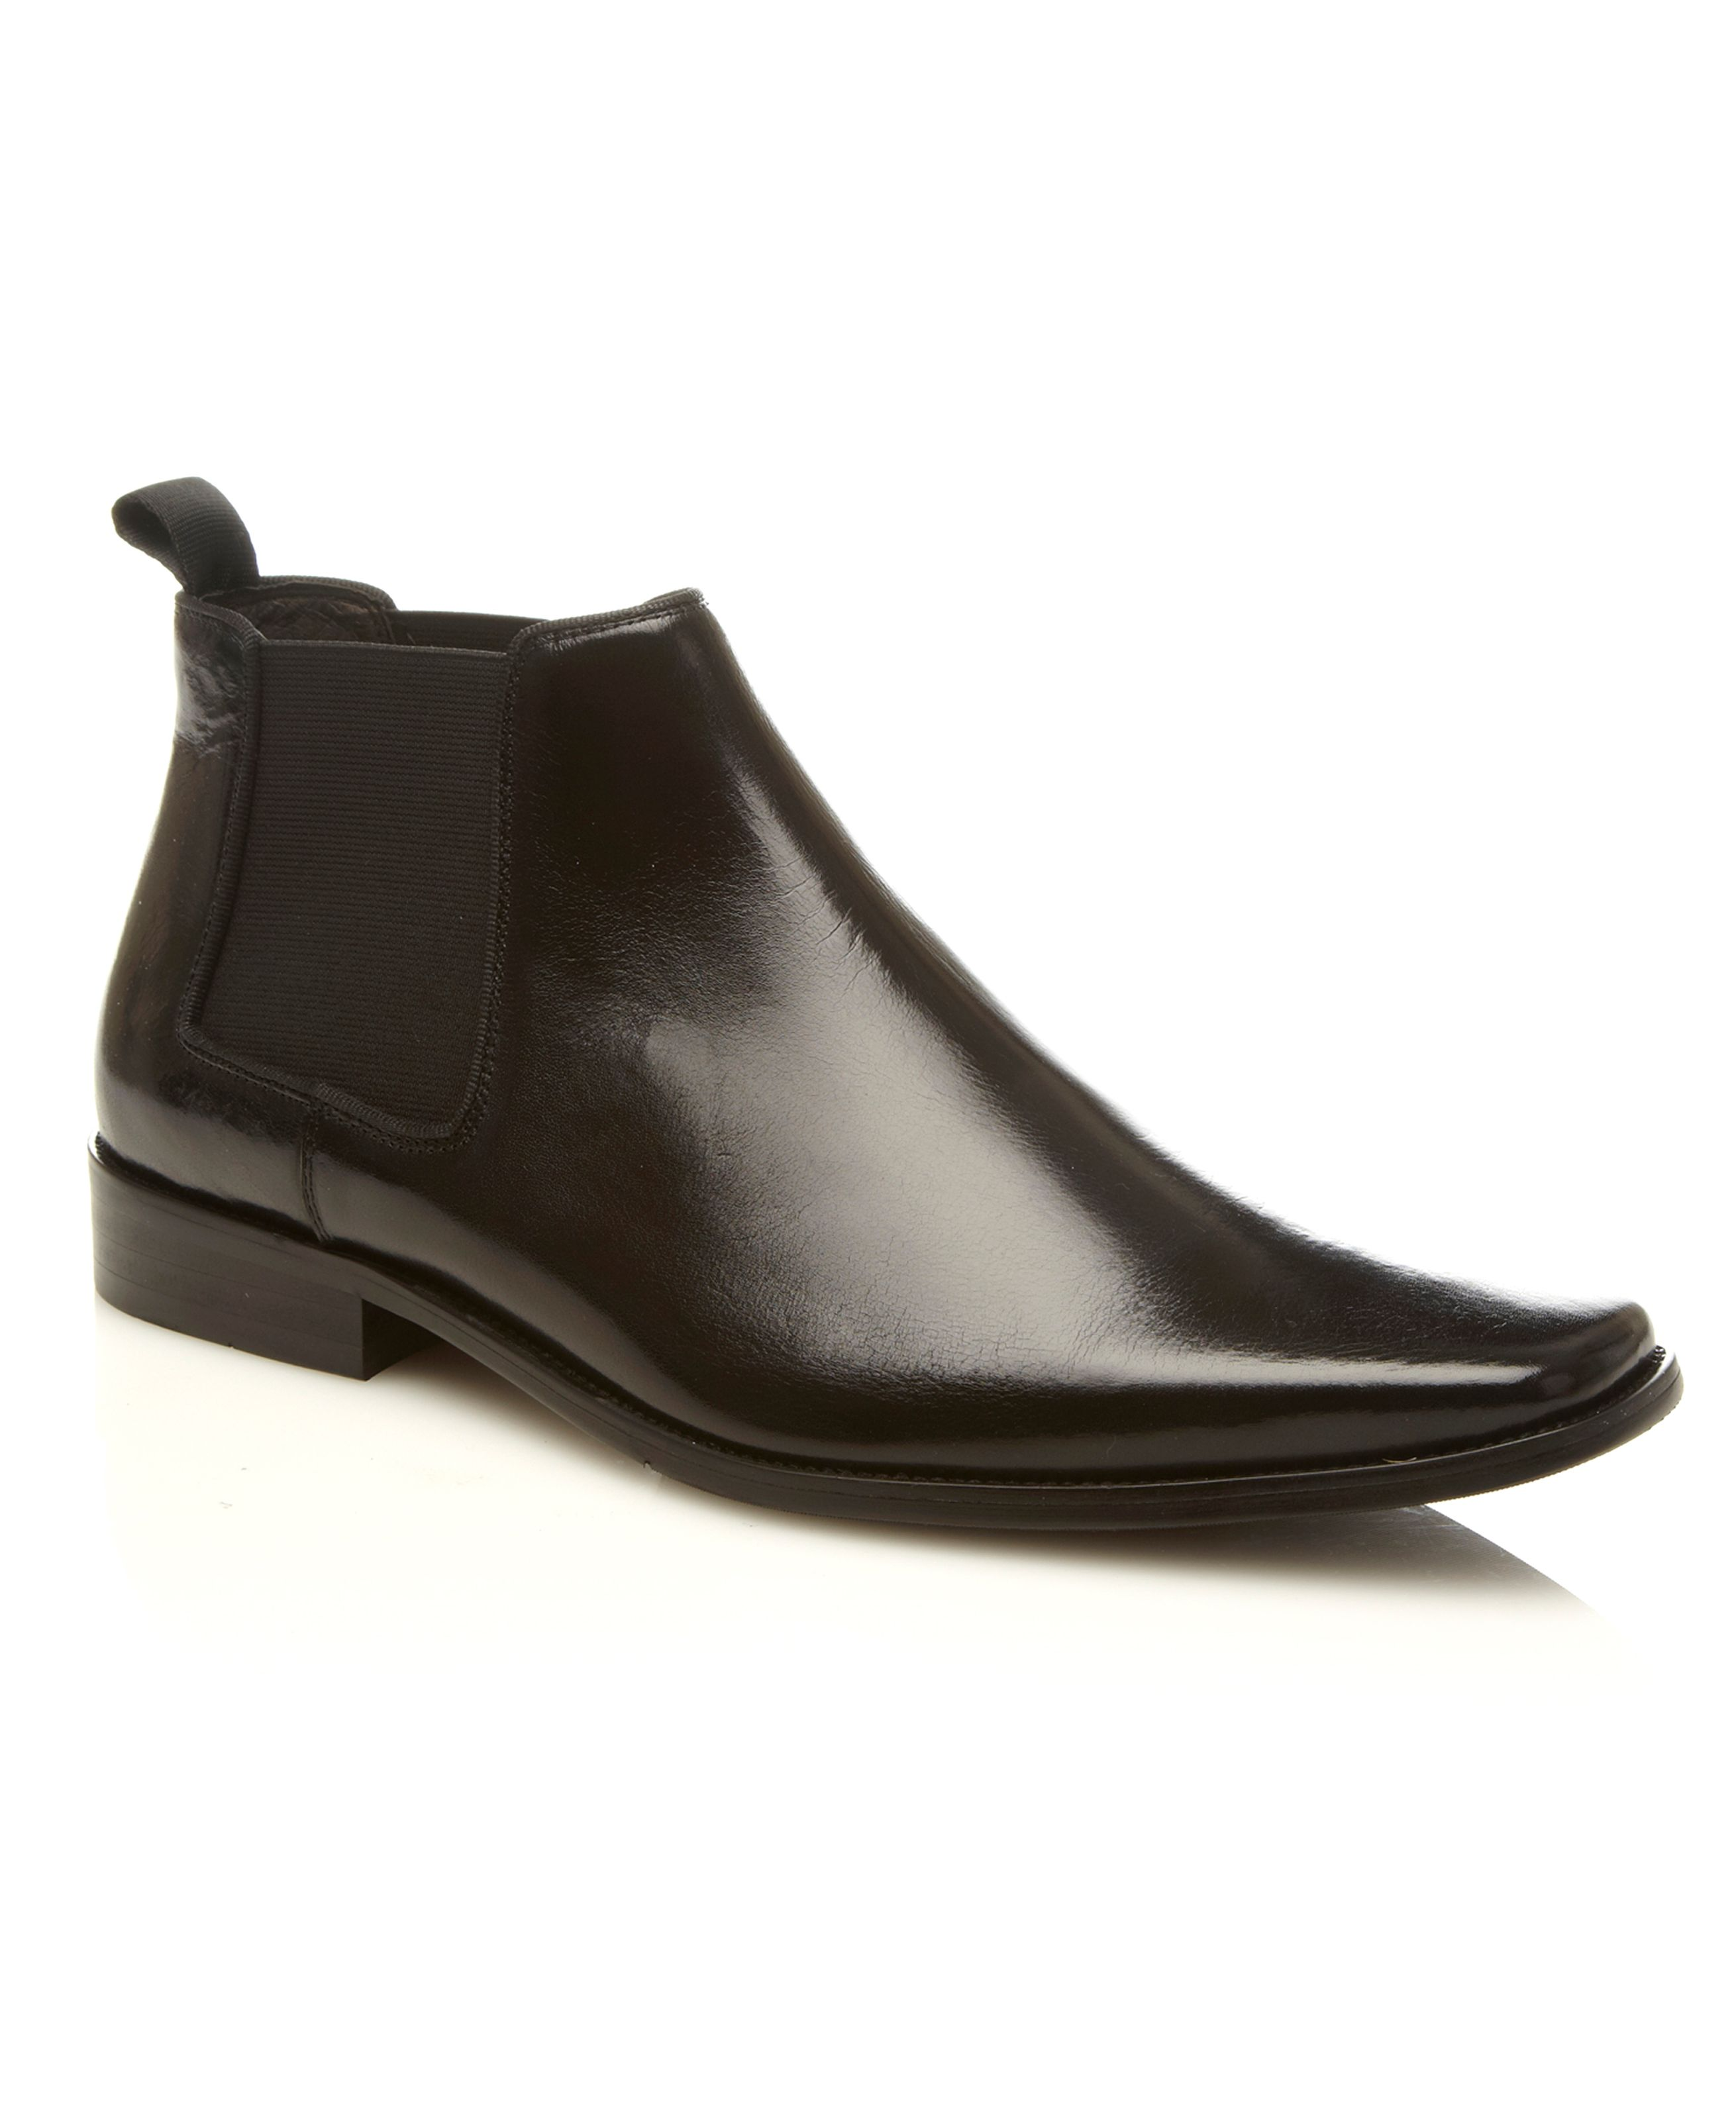 Arkwright 1 formal boots